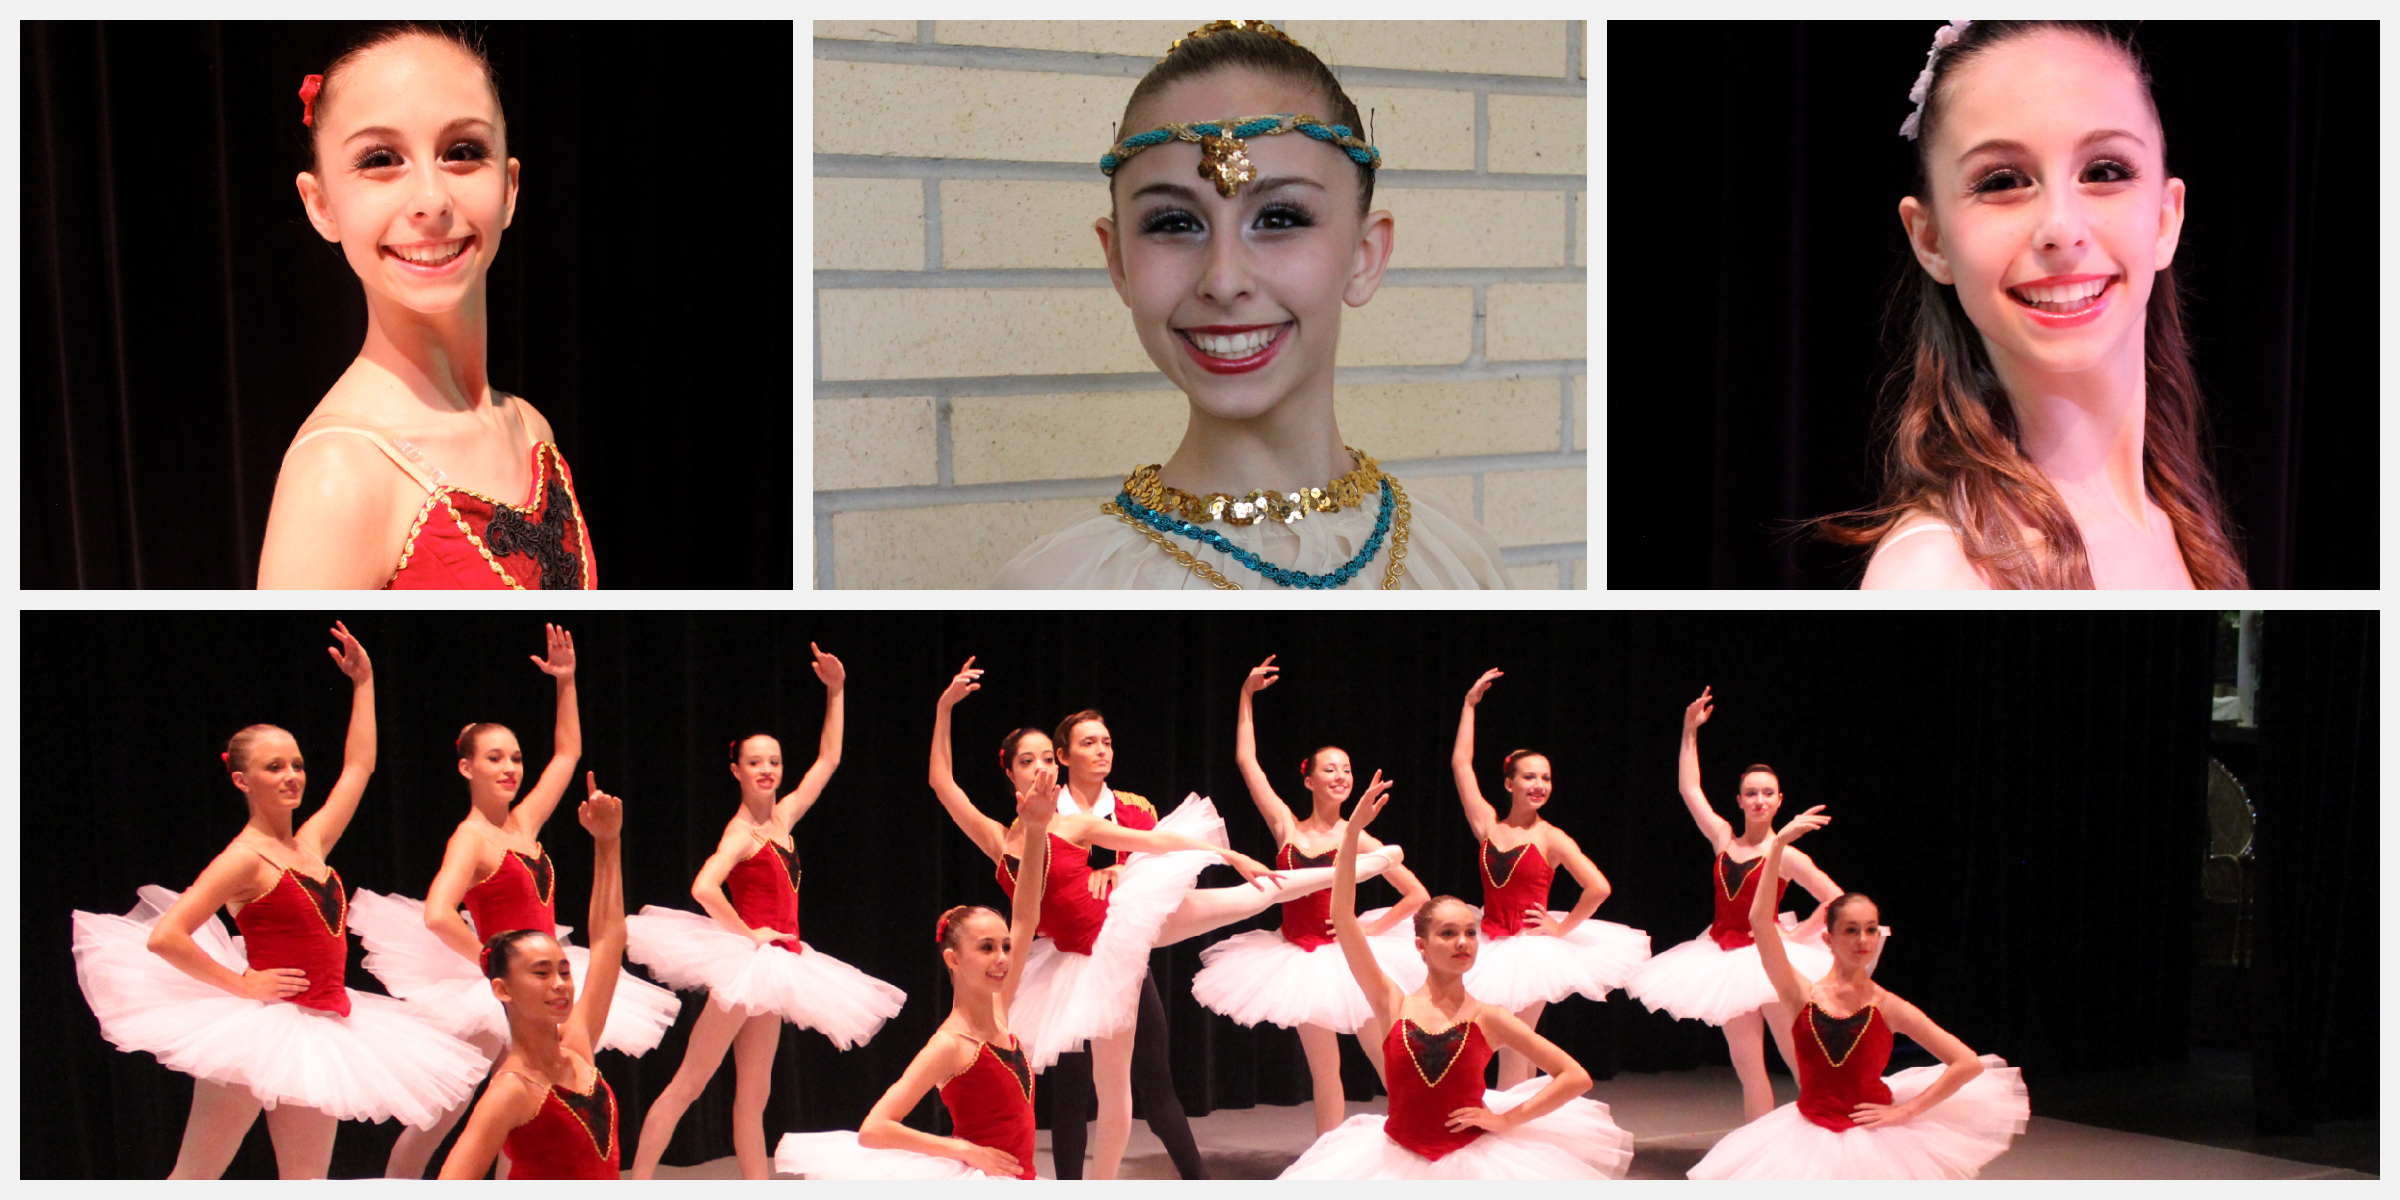 Spring 2014 ballet perfomance